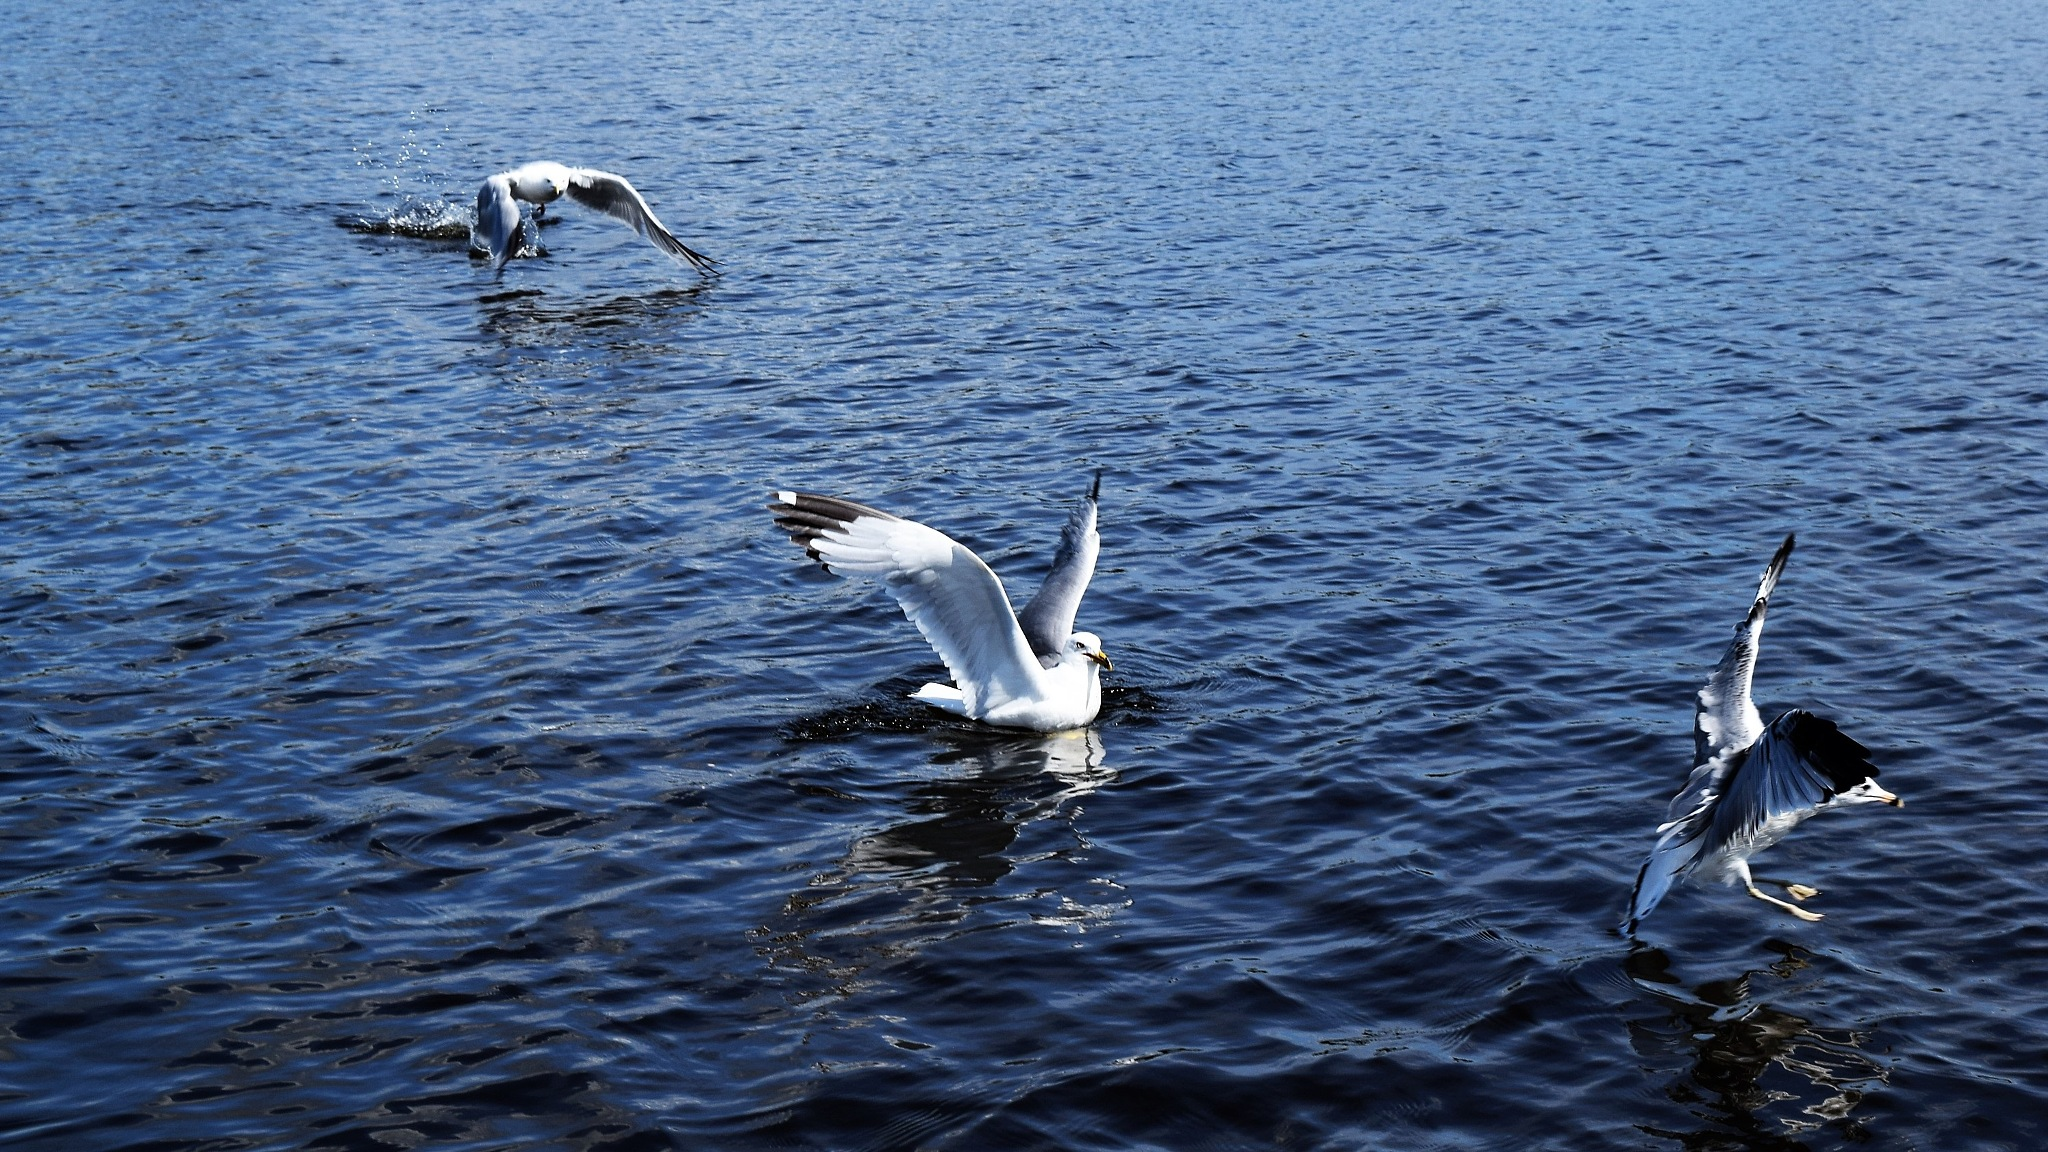 Seagulls 2 by Tracey Tg Gergulich